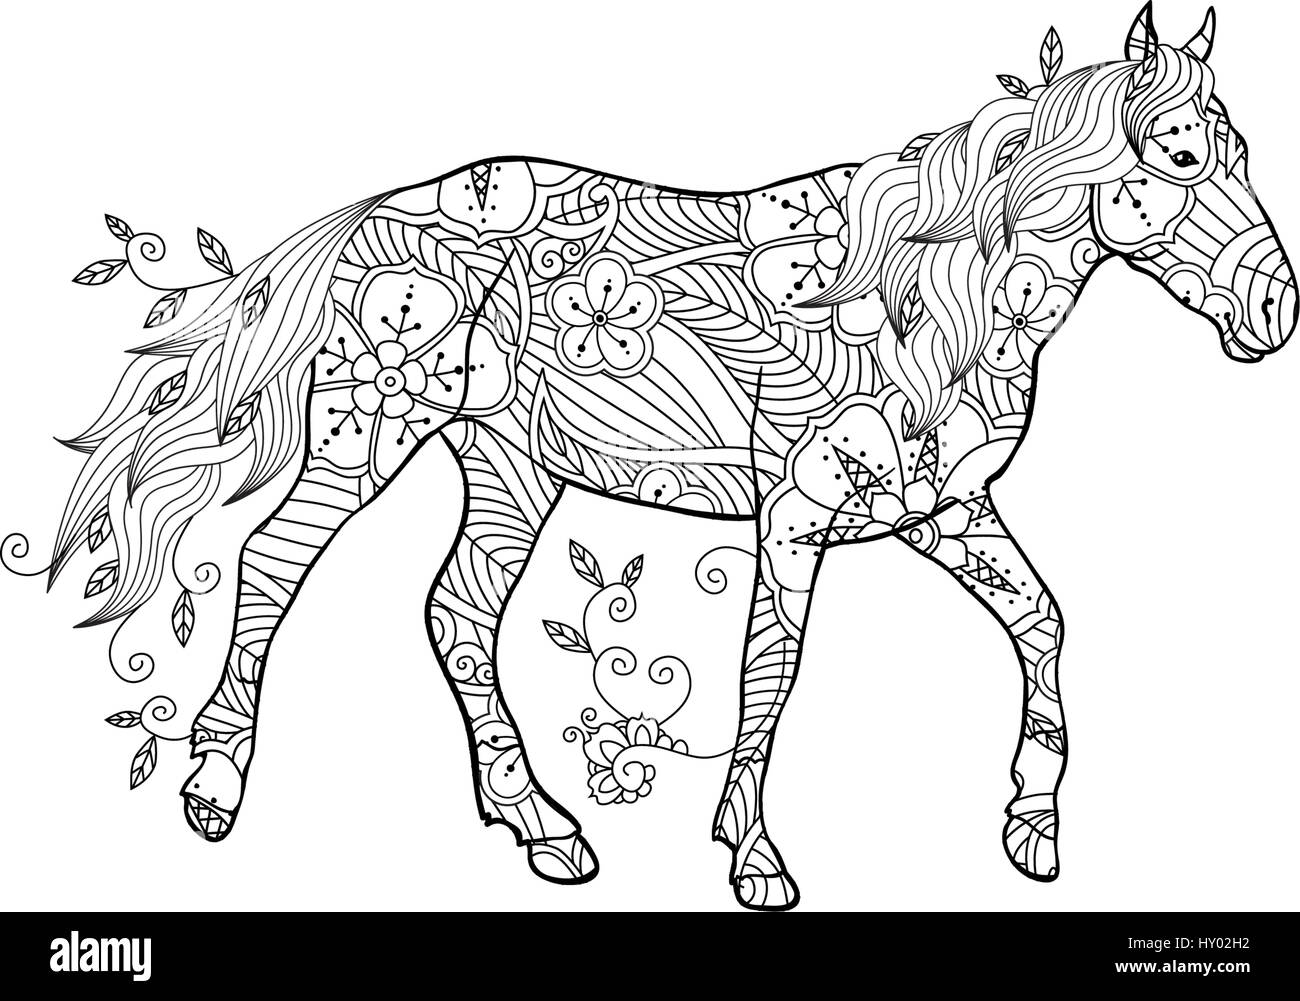 coloring page in zentangle inspired style running horse ornate by stock vector art illustration vector image 137070334 alamy - Coloring Page Zentangle